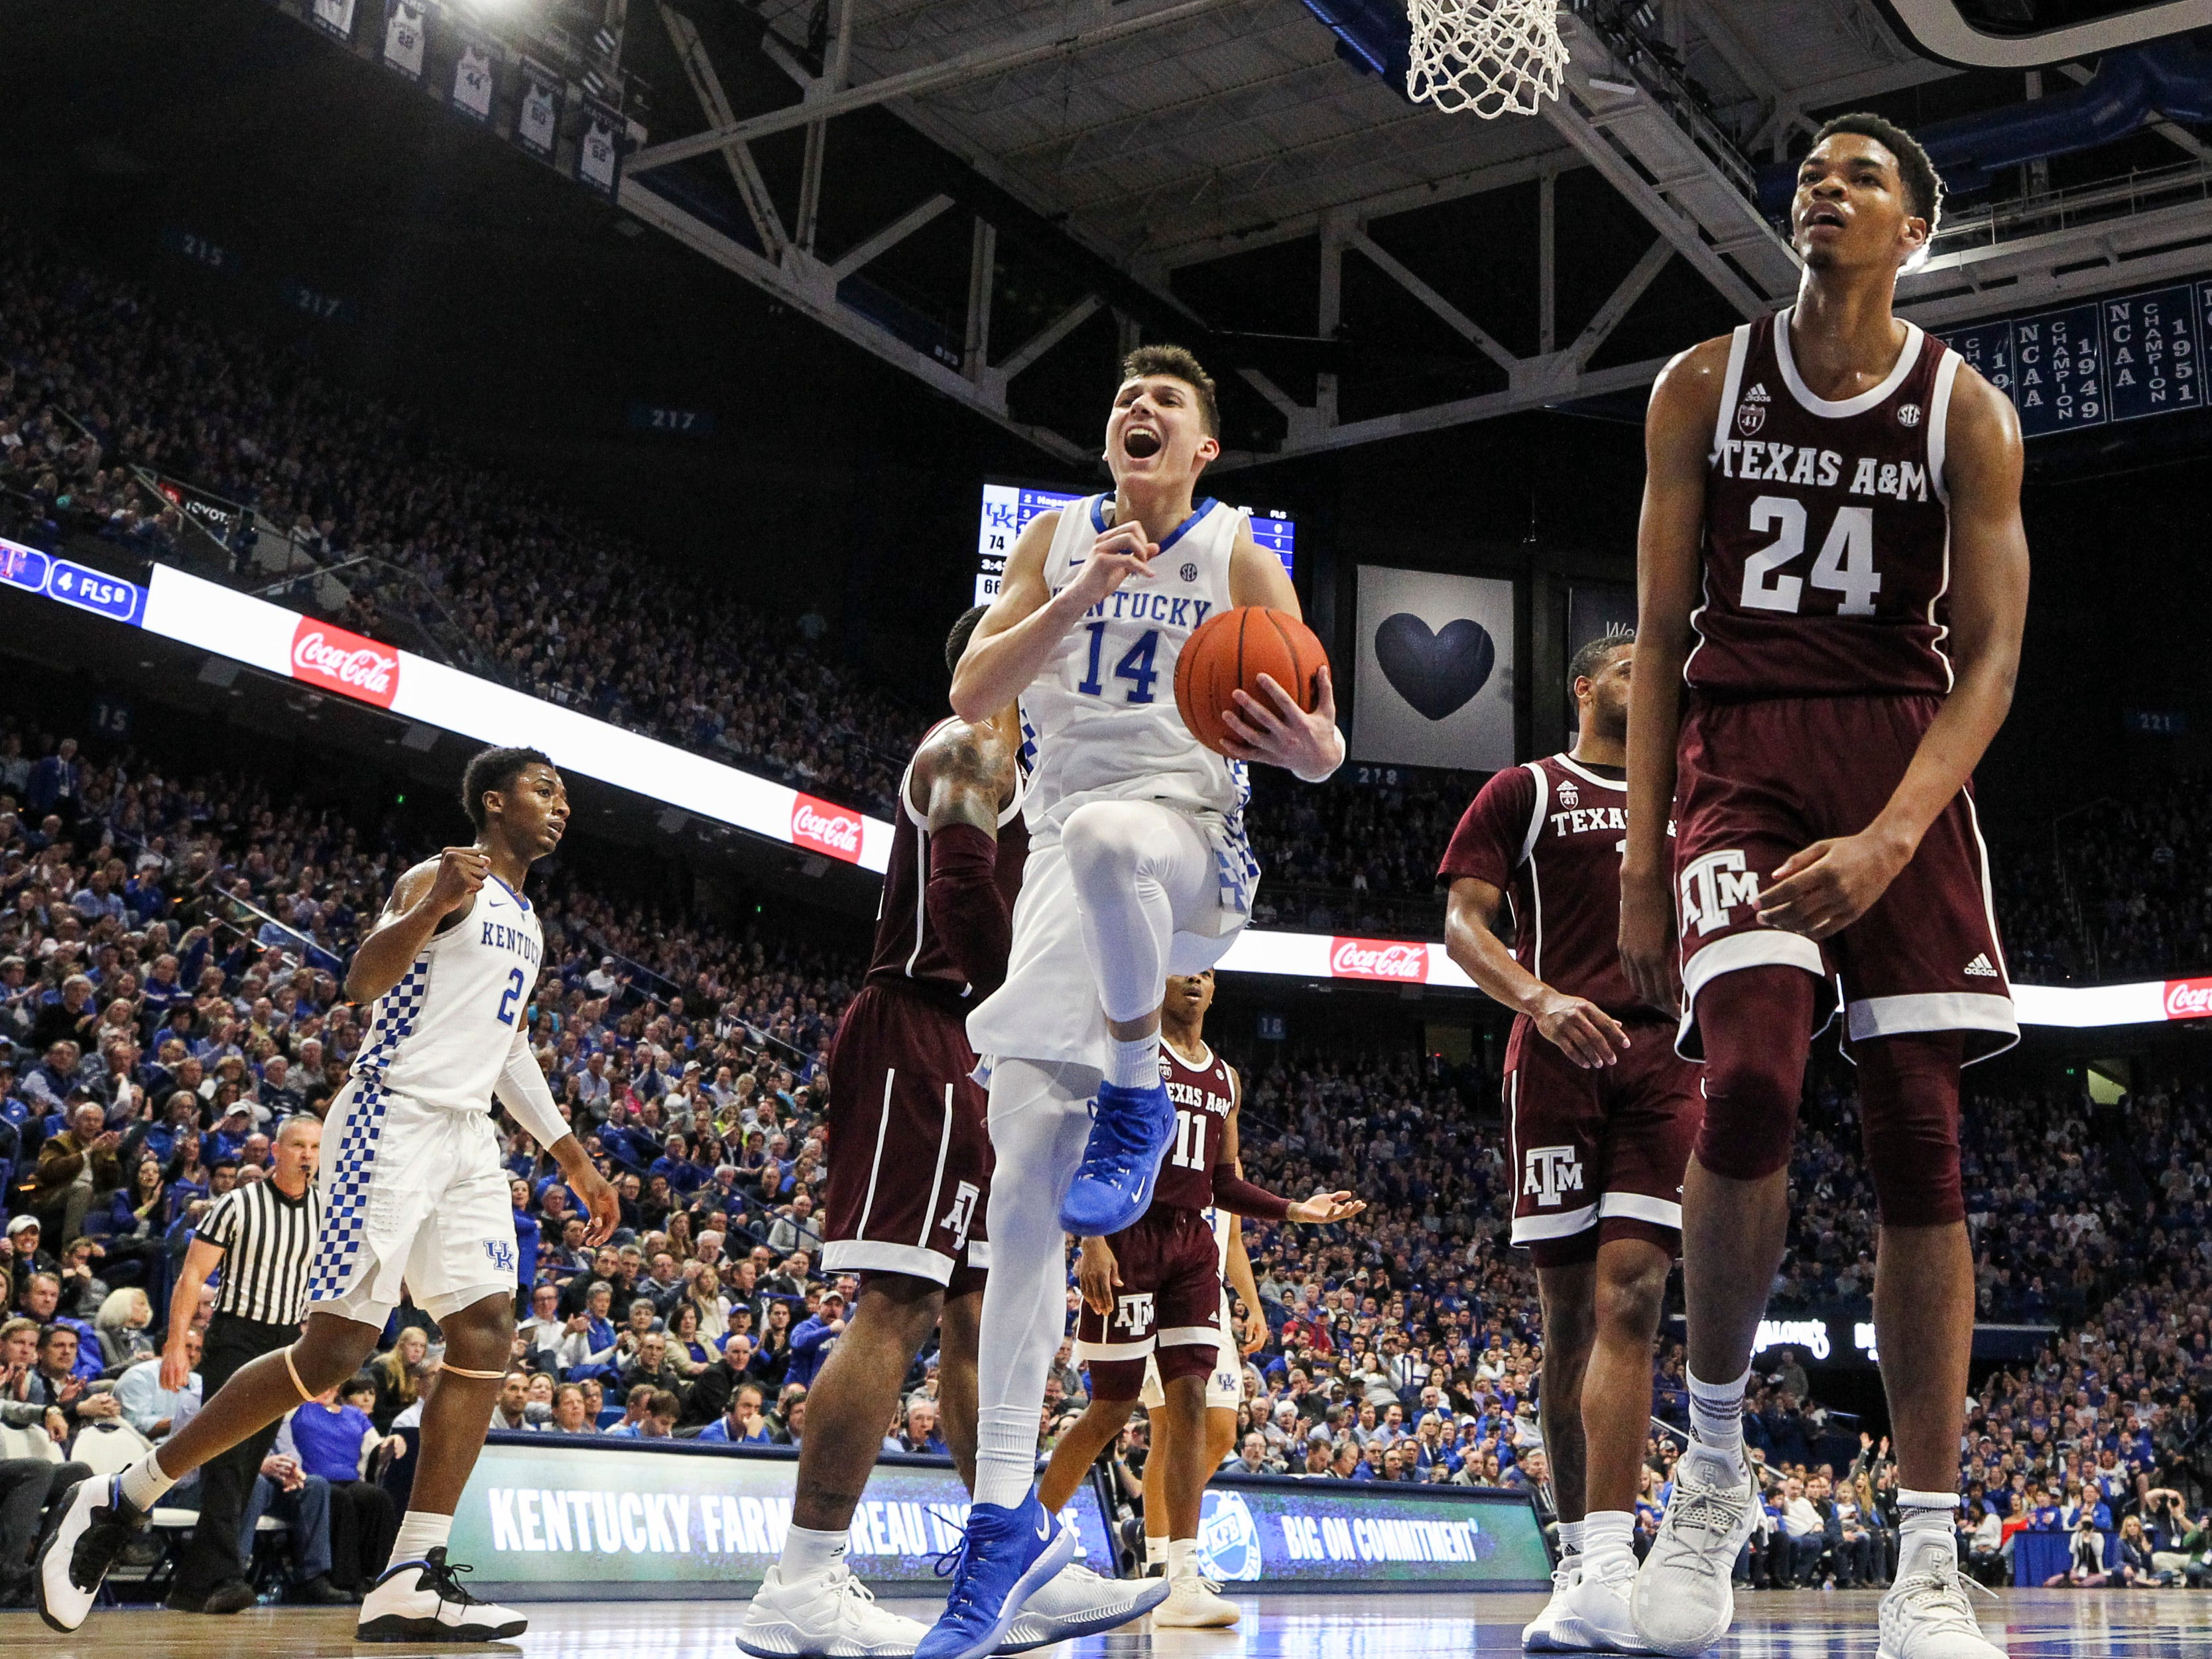 Kentucky's Tyler Herro had reason to celebrate Tuesday night at Rupp Arena in Lexington. Herro finished with 21 points as four players off the bench had 23 points in the Wildcats' win over Texas A&M. January 8, 2019